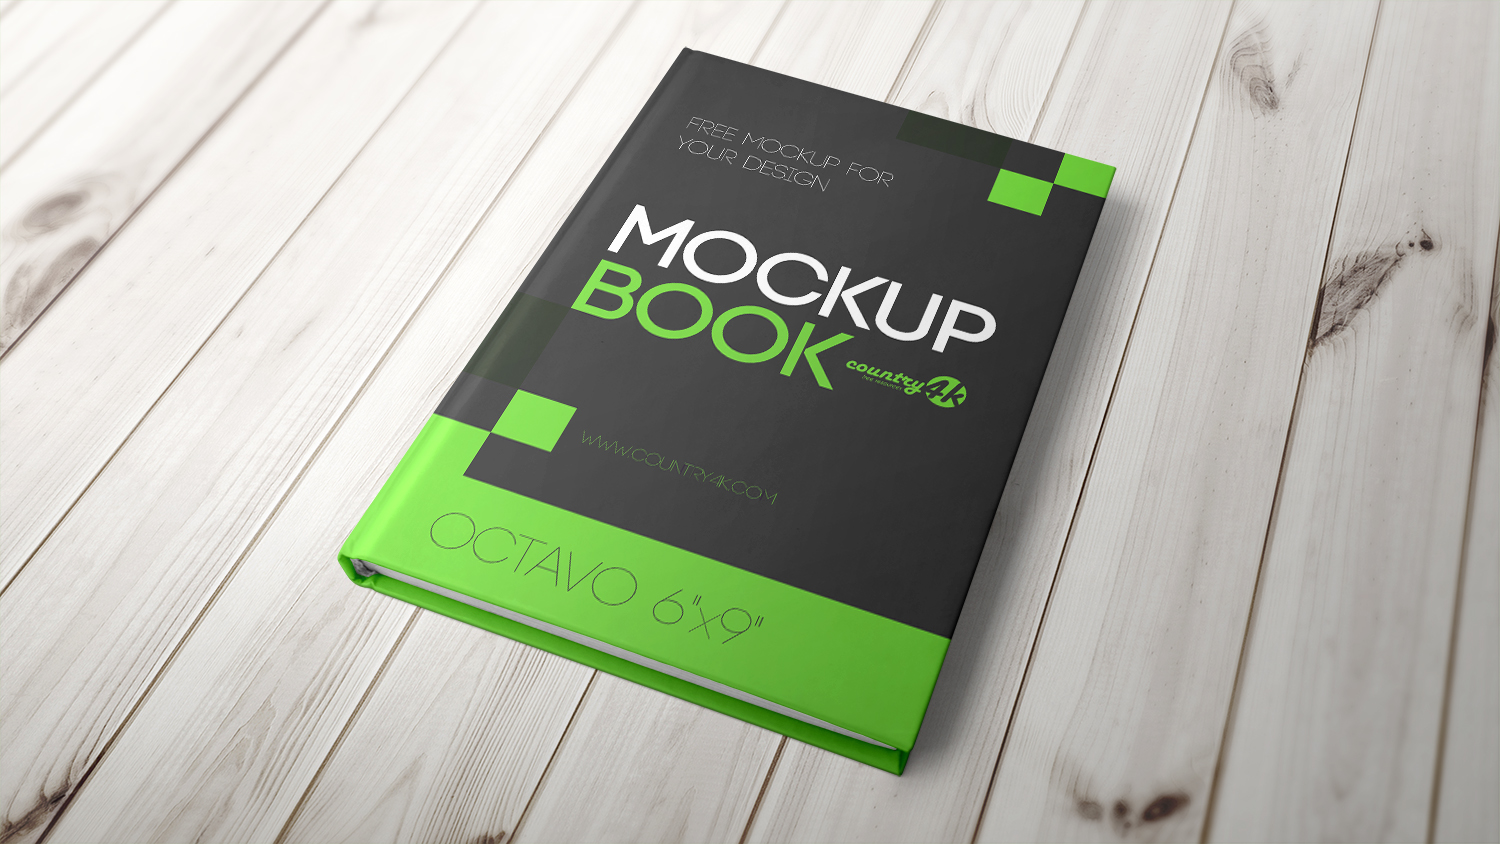 Hardcover Book Mockup Free